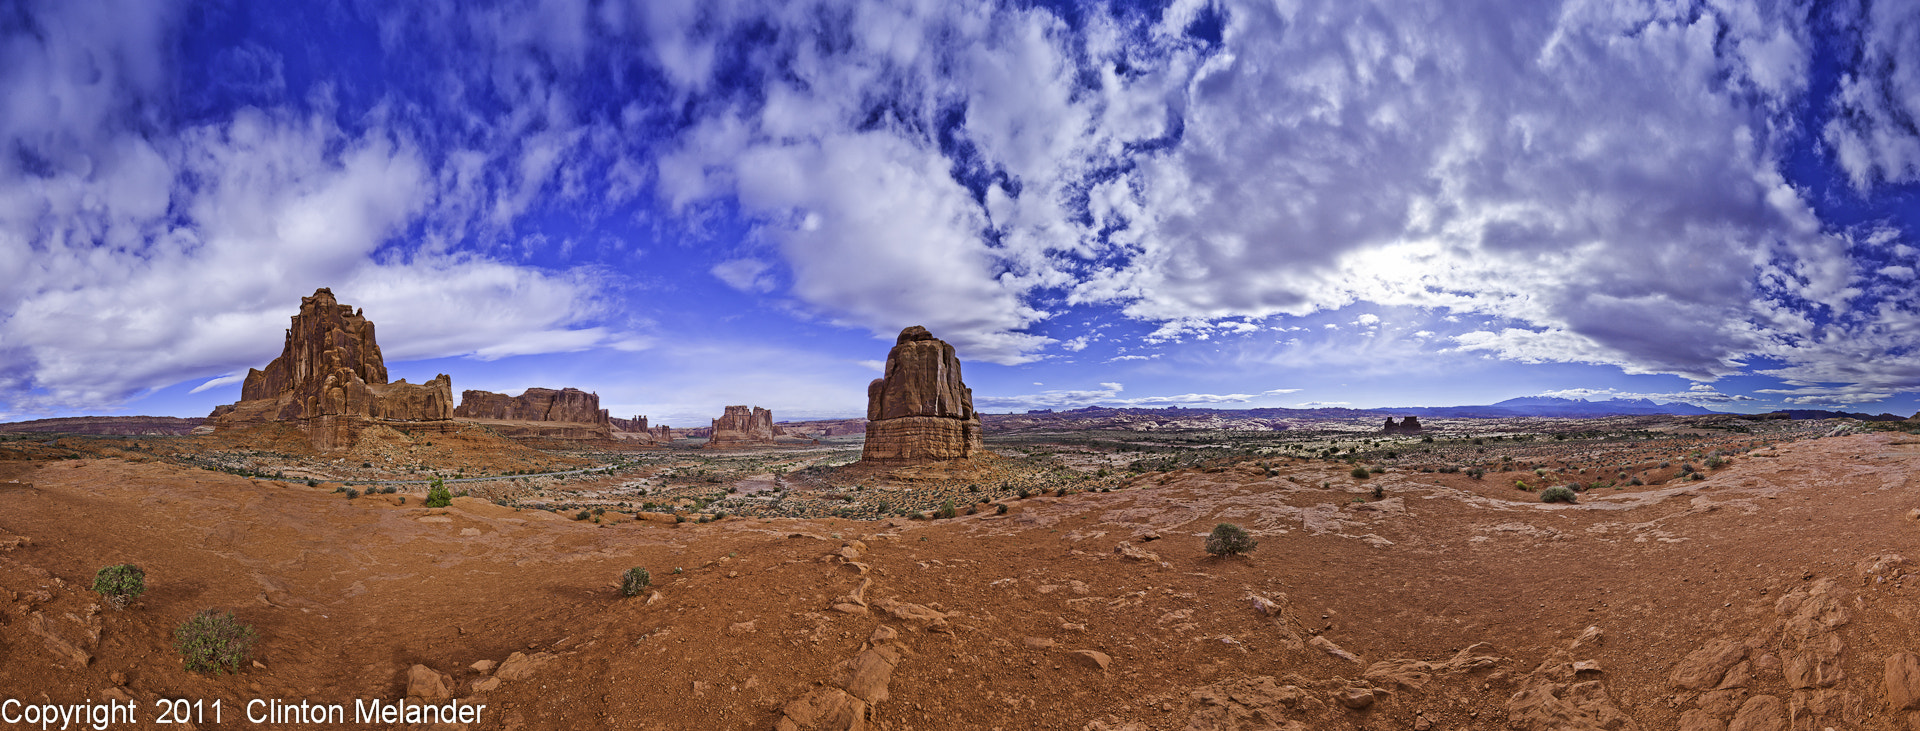 Photograph Arches National Park Panoramic by Clinton Melander on 500px